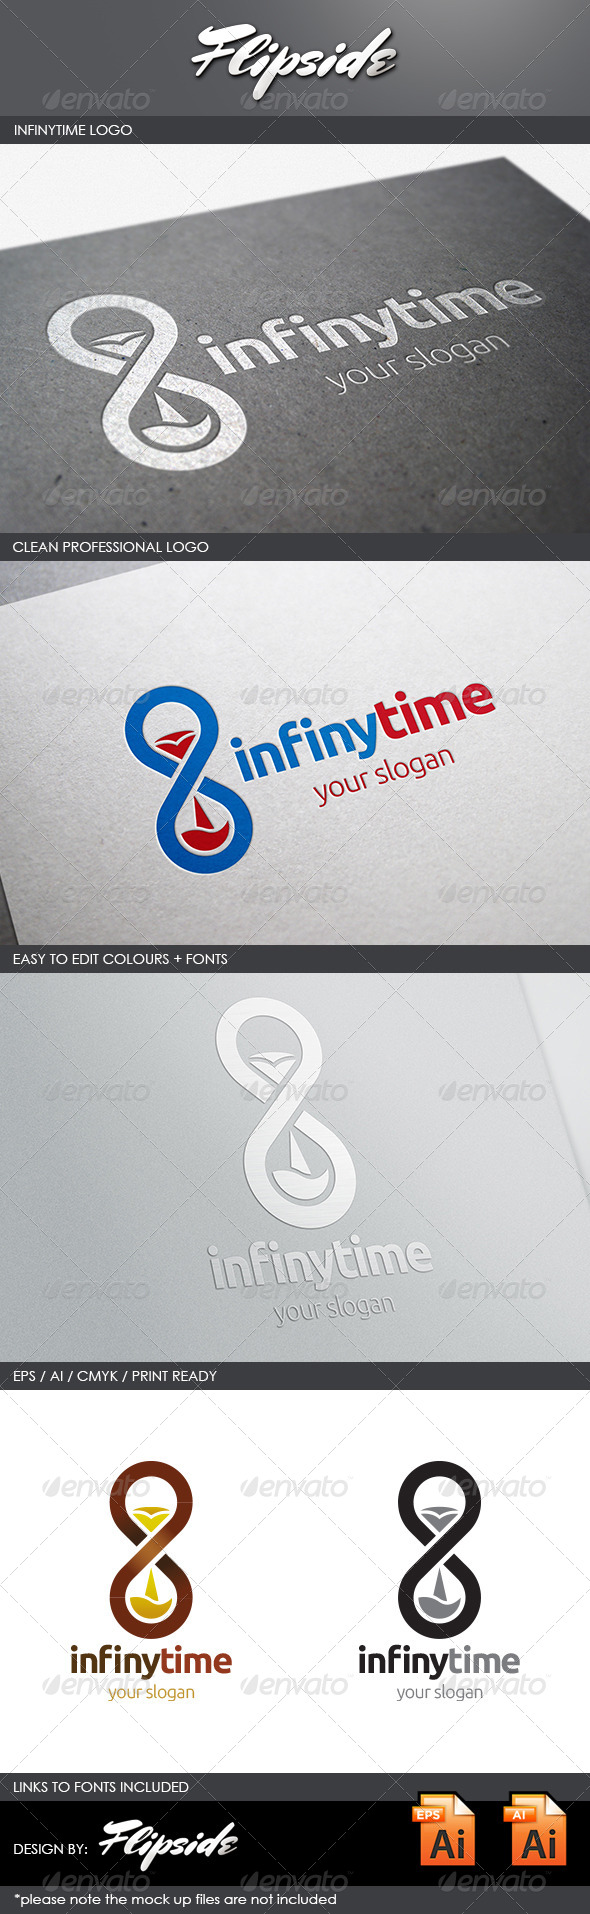 GraphicRiver Infinytime Logo 4366709